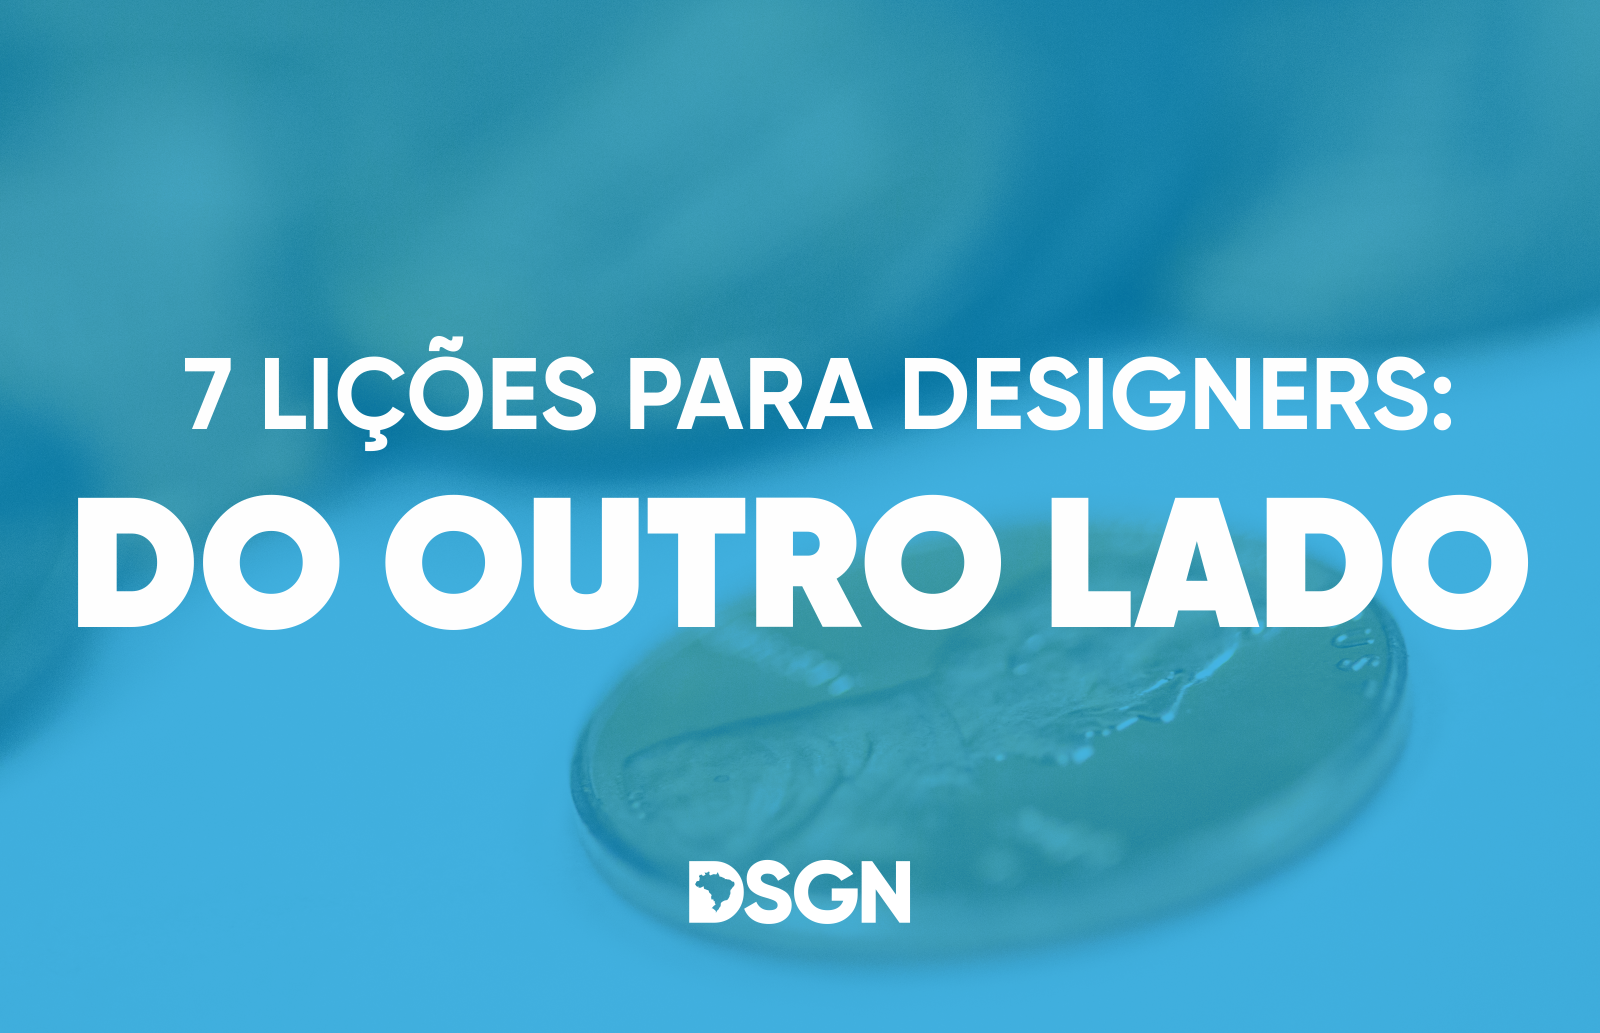 do outro lado do design